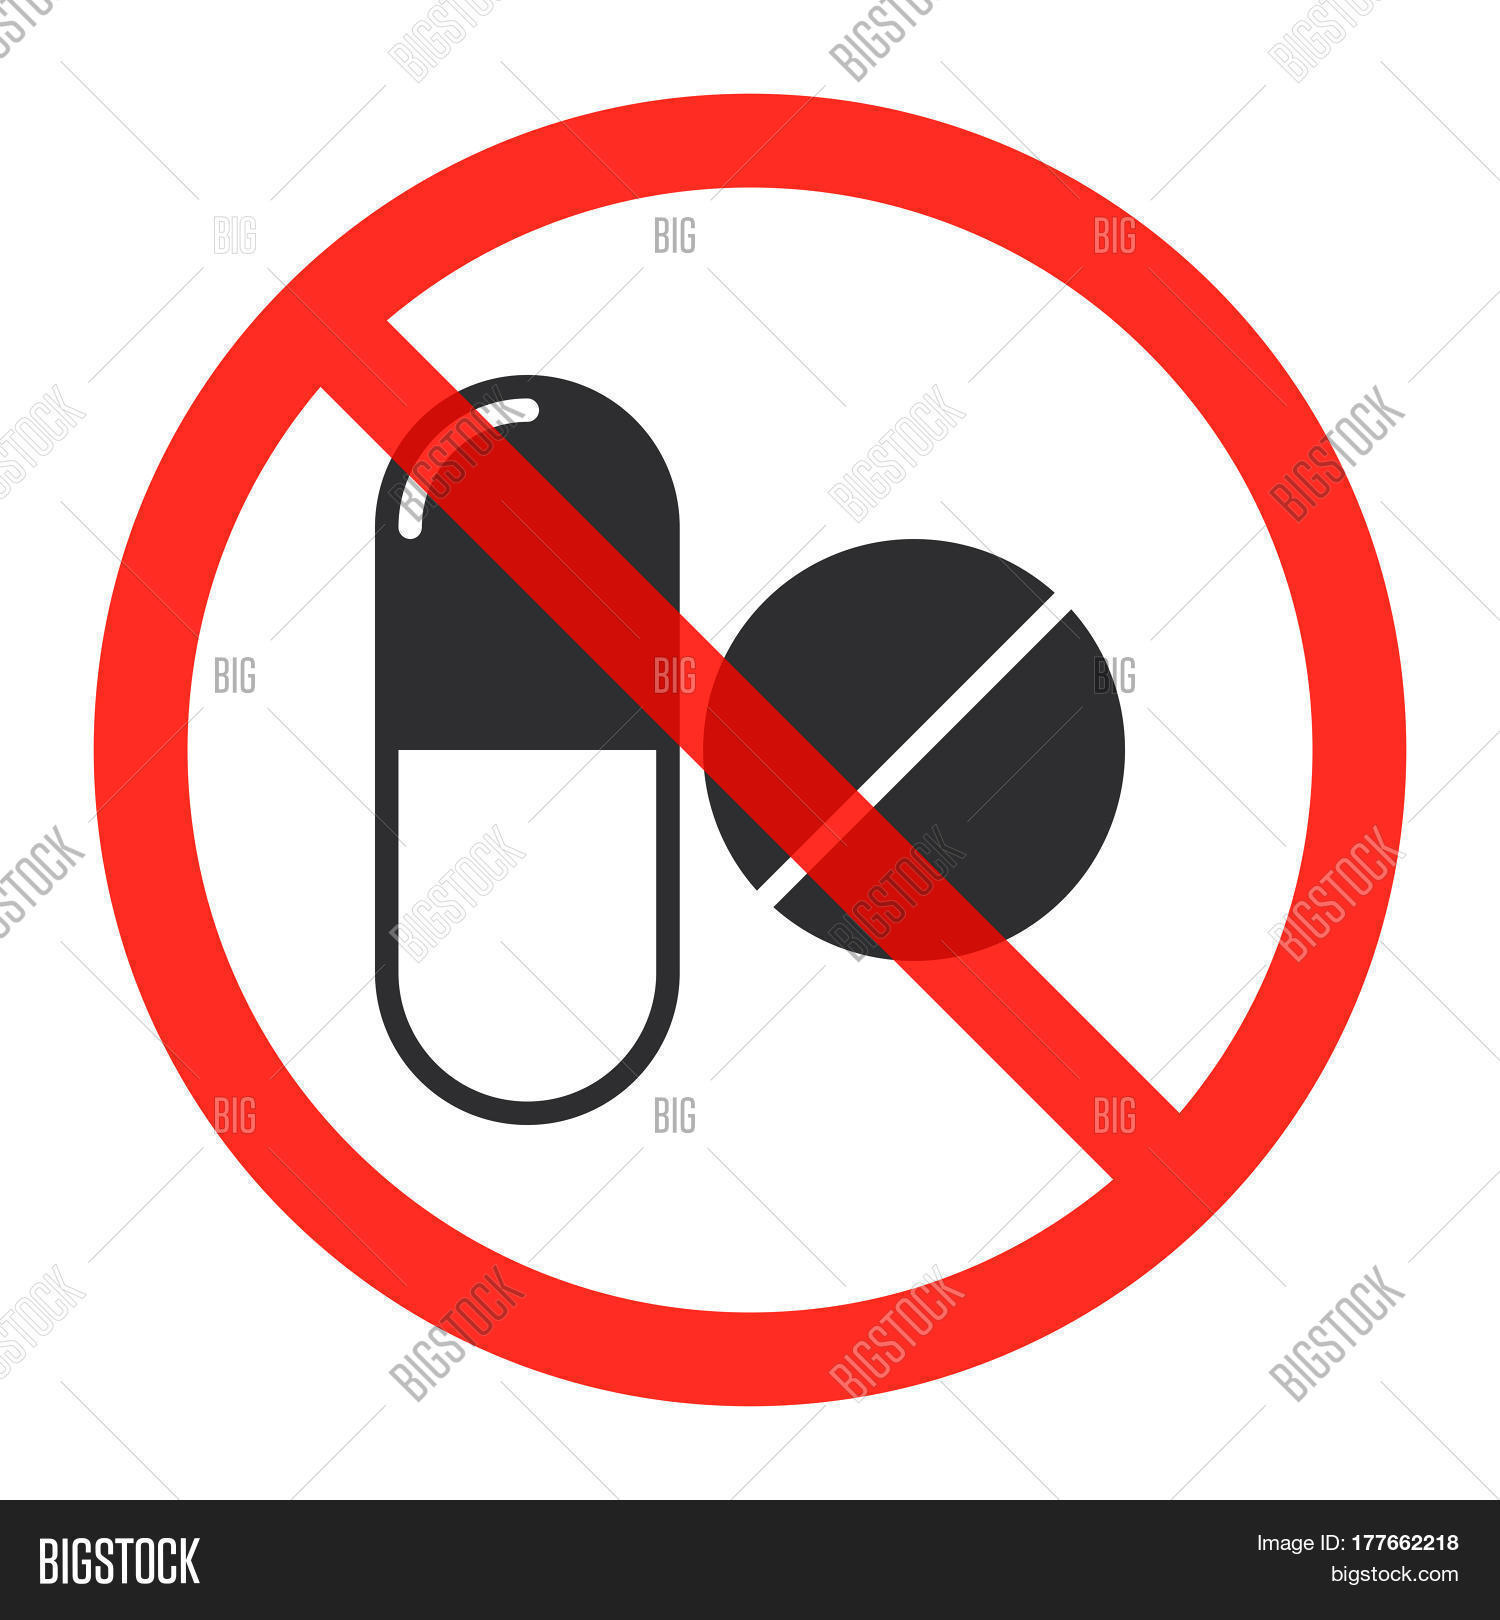 Drugs icon prohibition red circle vector photo bigstock drugs icon in prohibition red circle no doping ban or stop sign medicine forbidden symbol buycottarizona Image collections